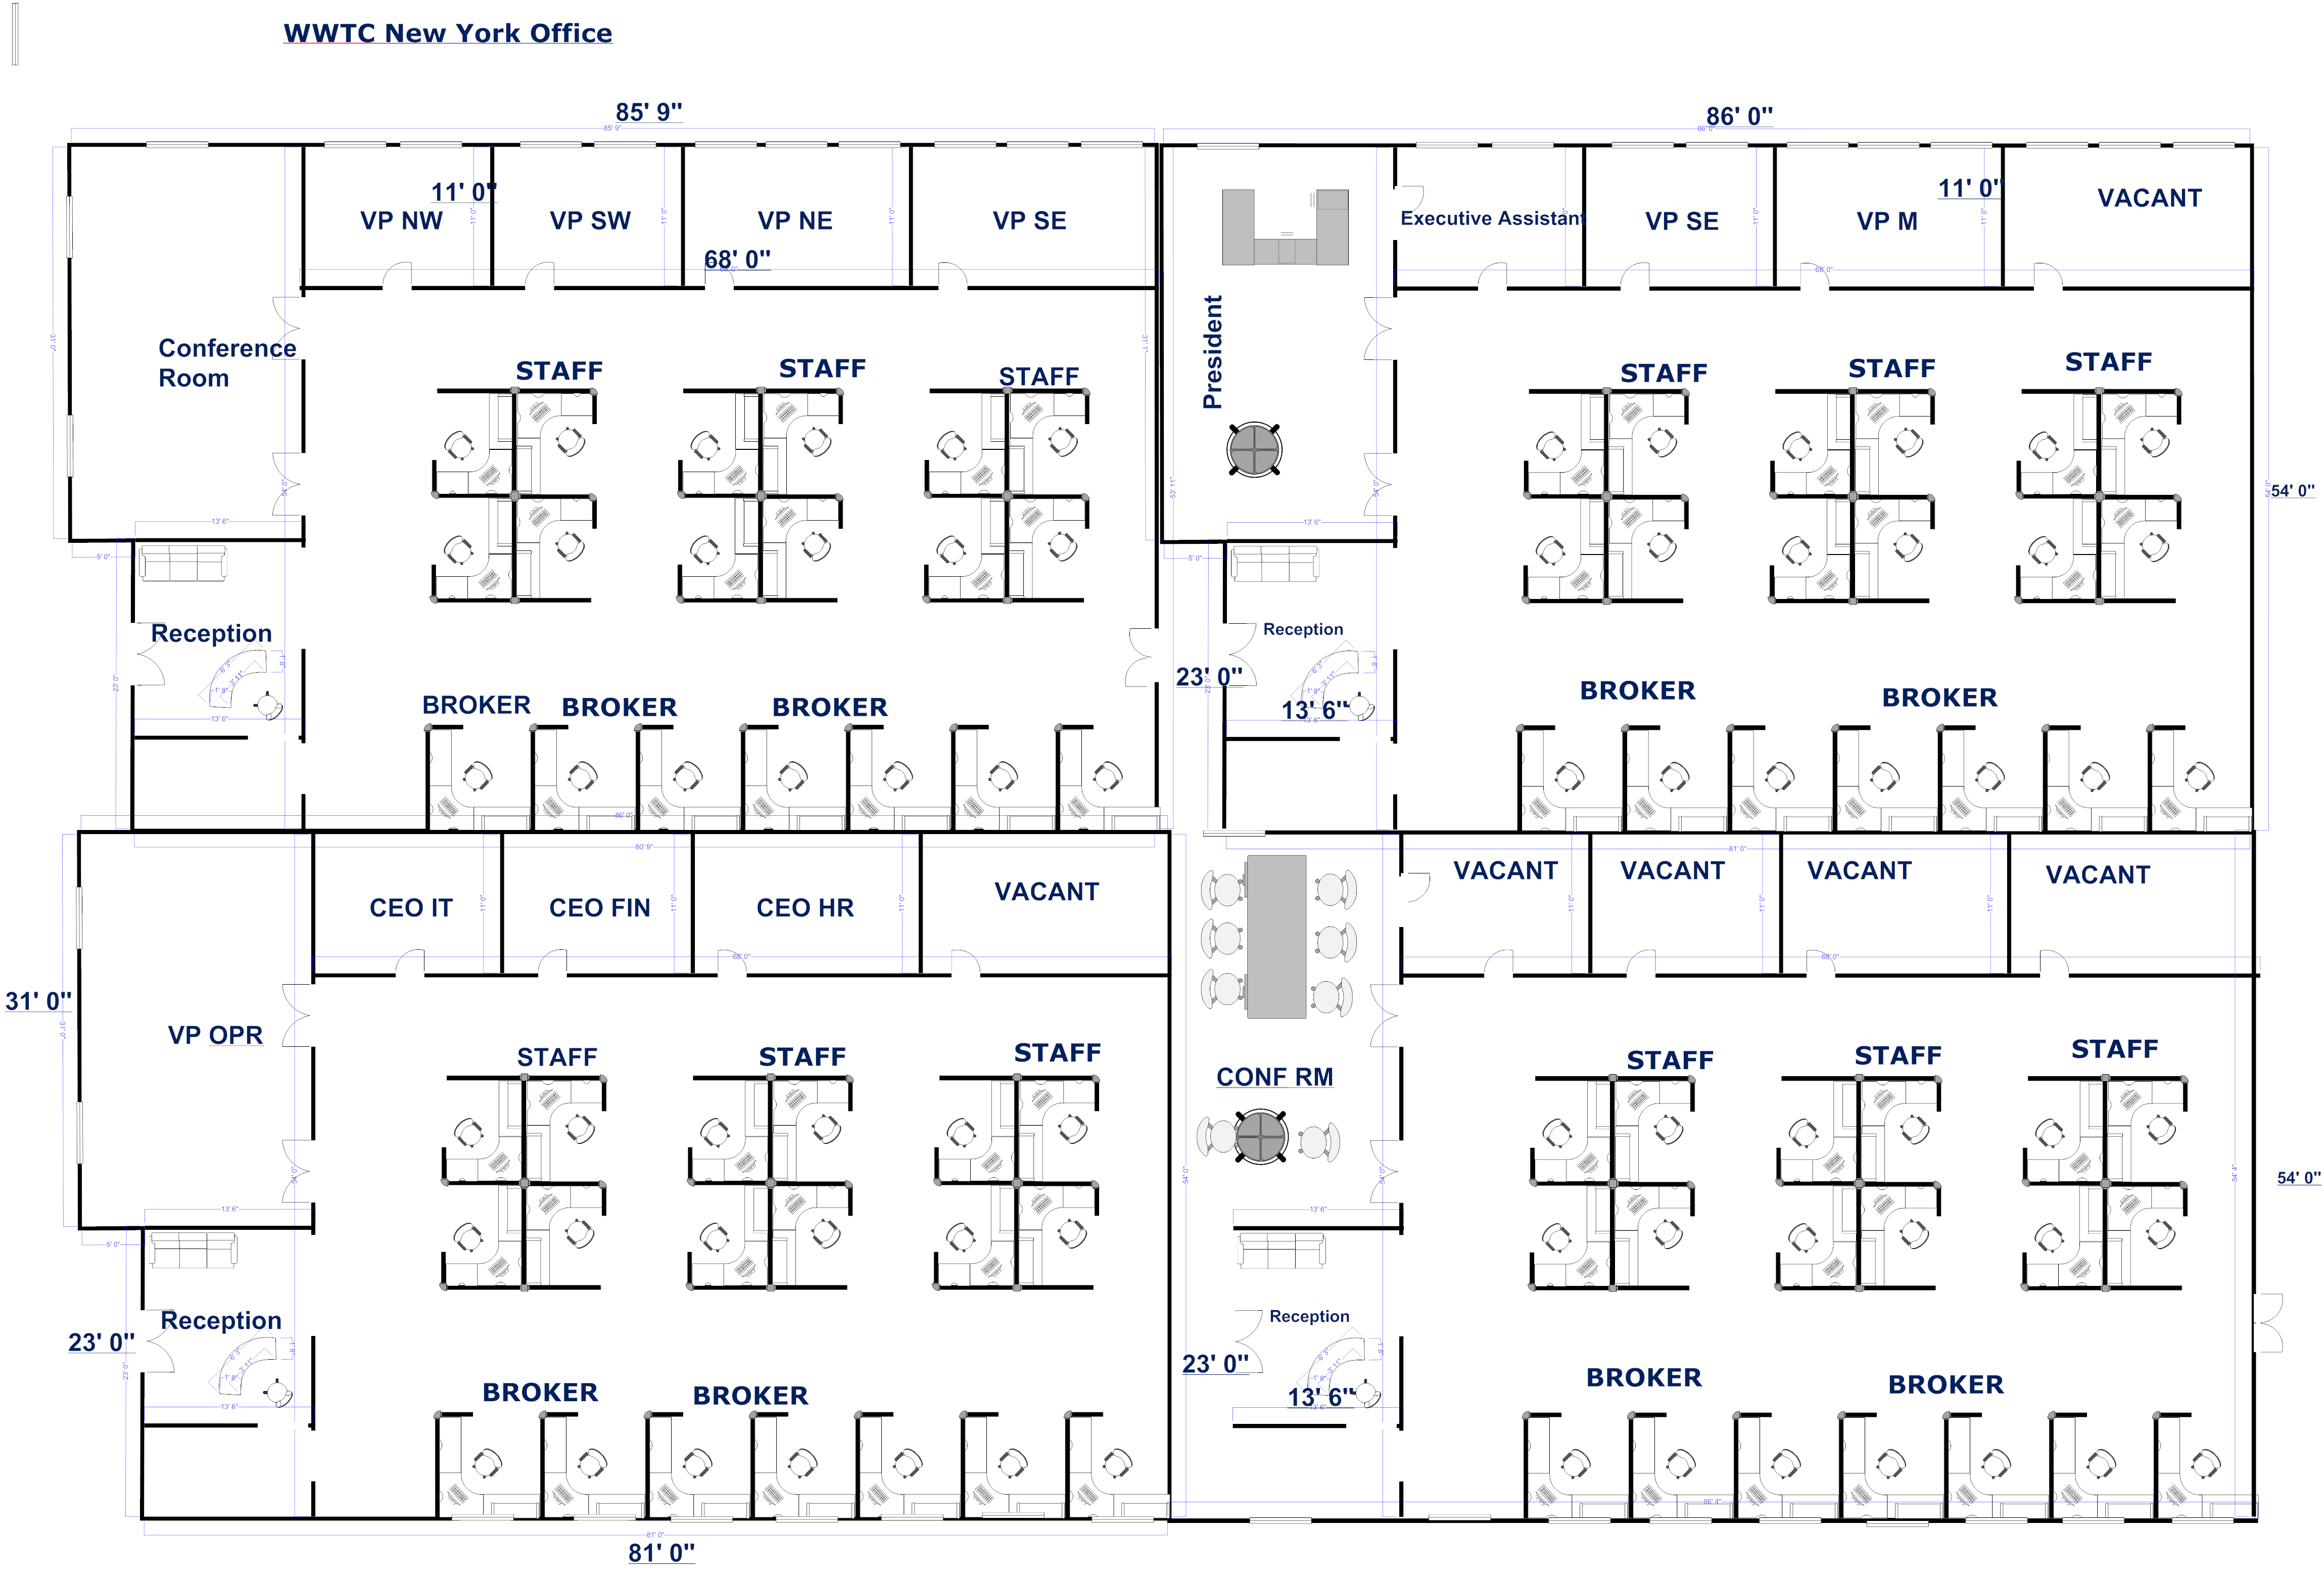 WWTC Office Layout.png